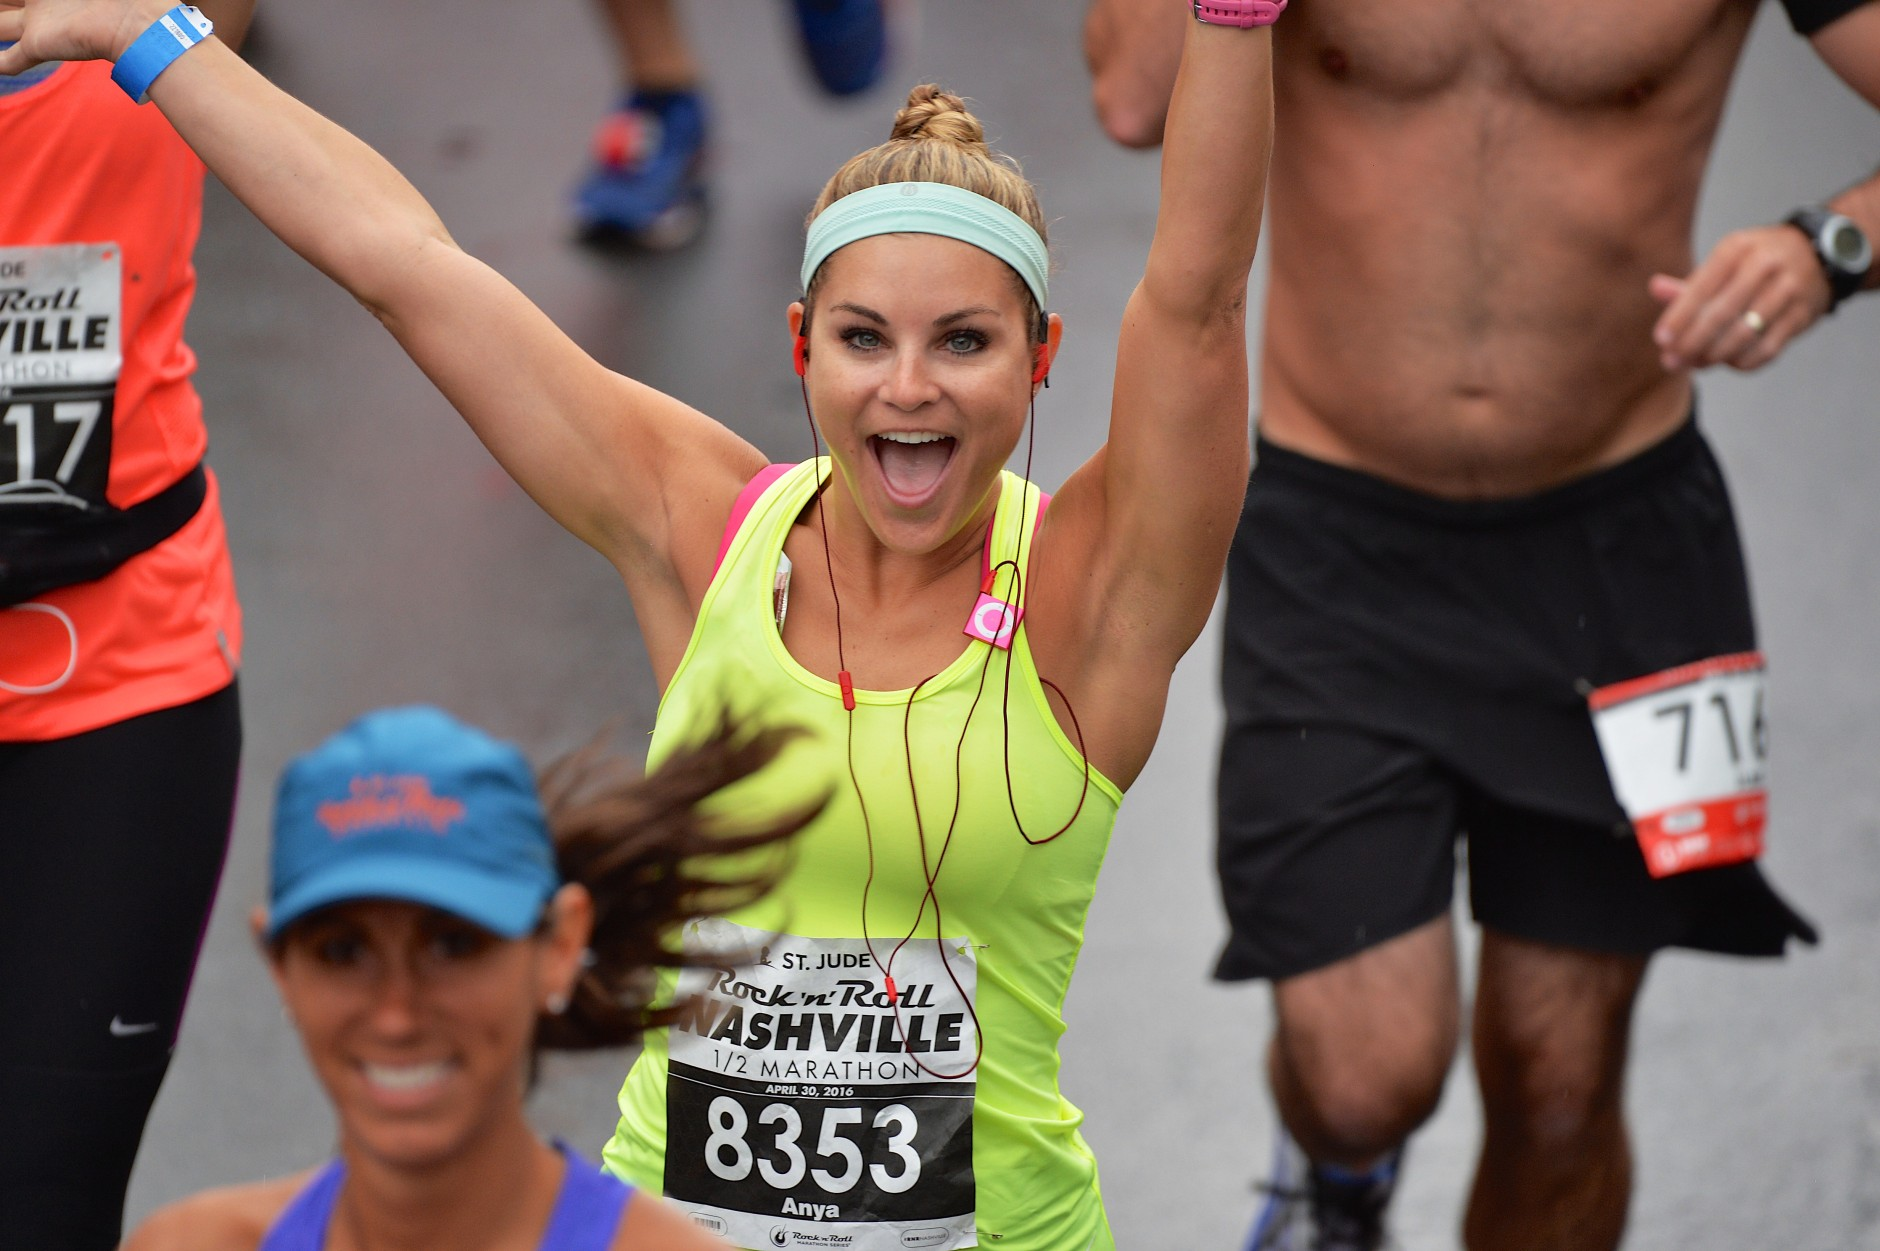 NASHVILLE, TN - APRIL 30:  Runner Anya Marmuscak crosses the start line at the St. Jude Rock 'n' Roll Nashville Marathon/Half Marathon and 5k where more than 34,000 participants weathered the rain during the 17th running on April 30, 2016 in Nashville, Tennessee.  (Photo by Jason Davis/Getty Images for St. Jude )